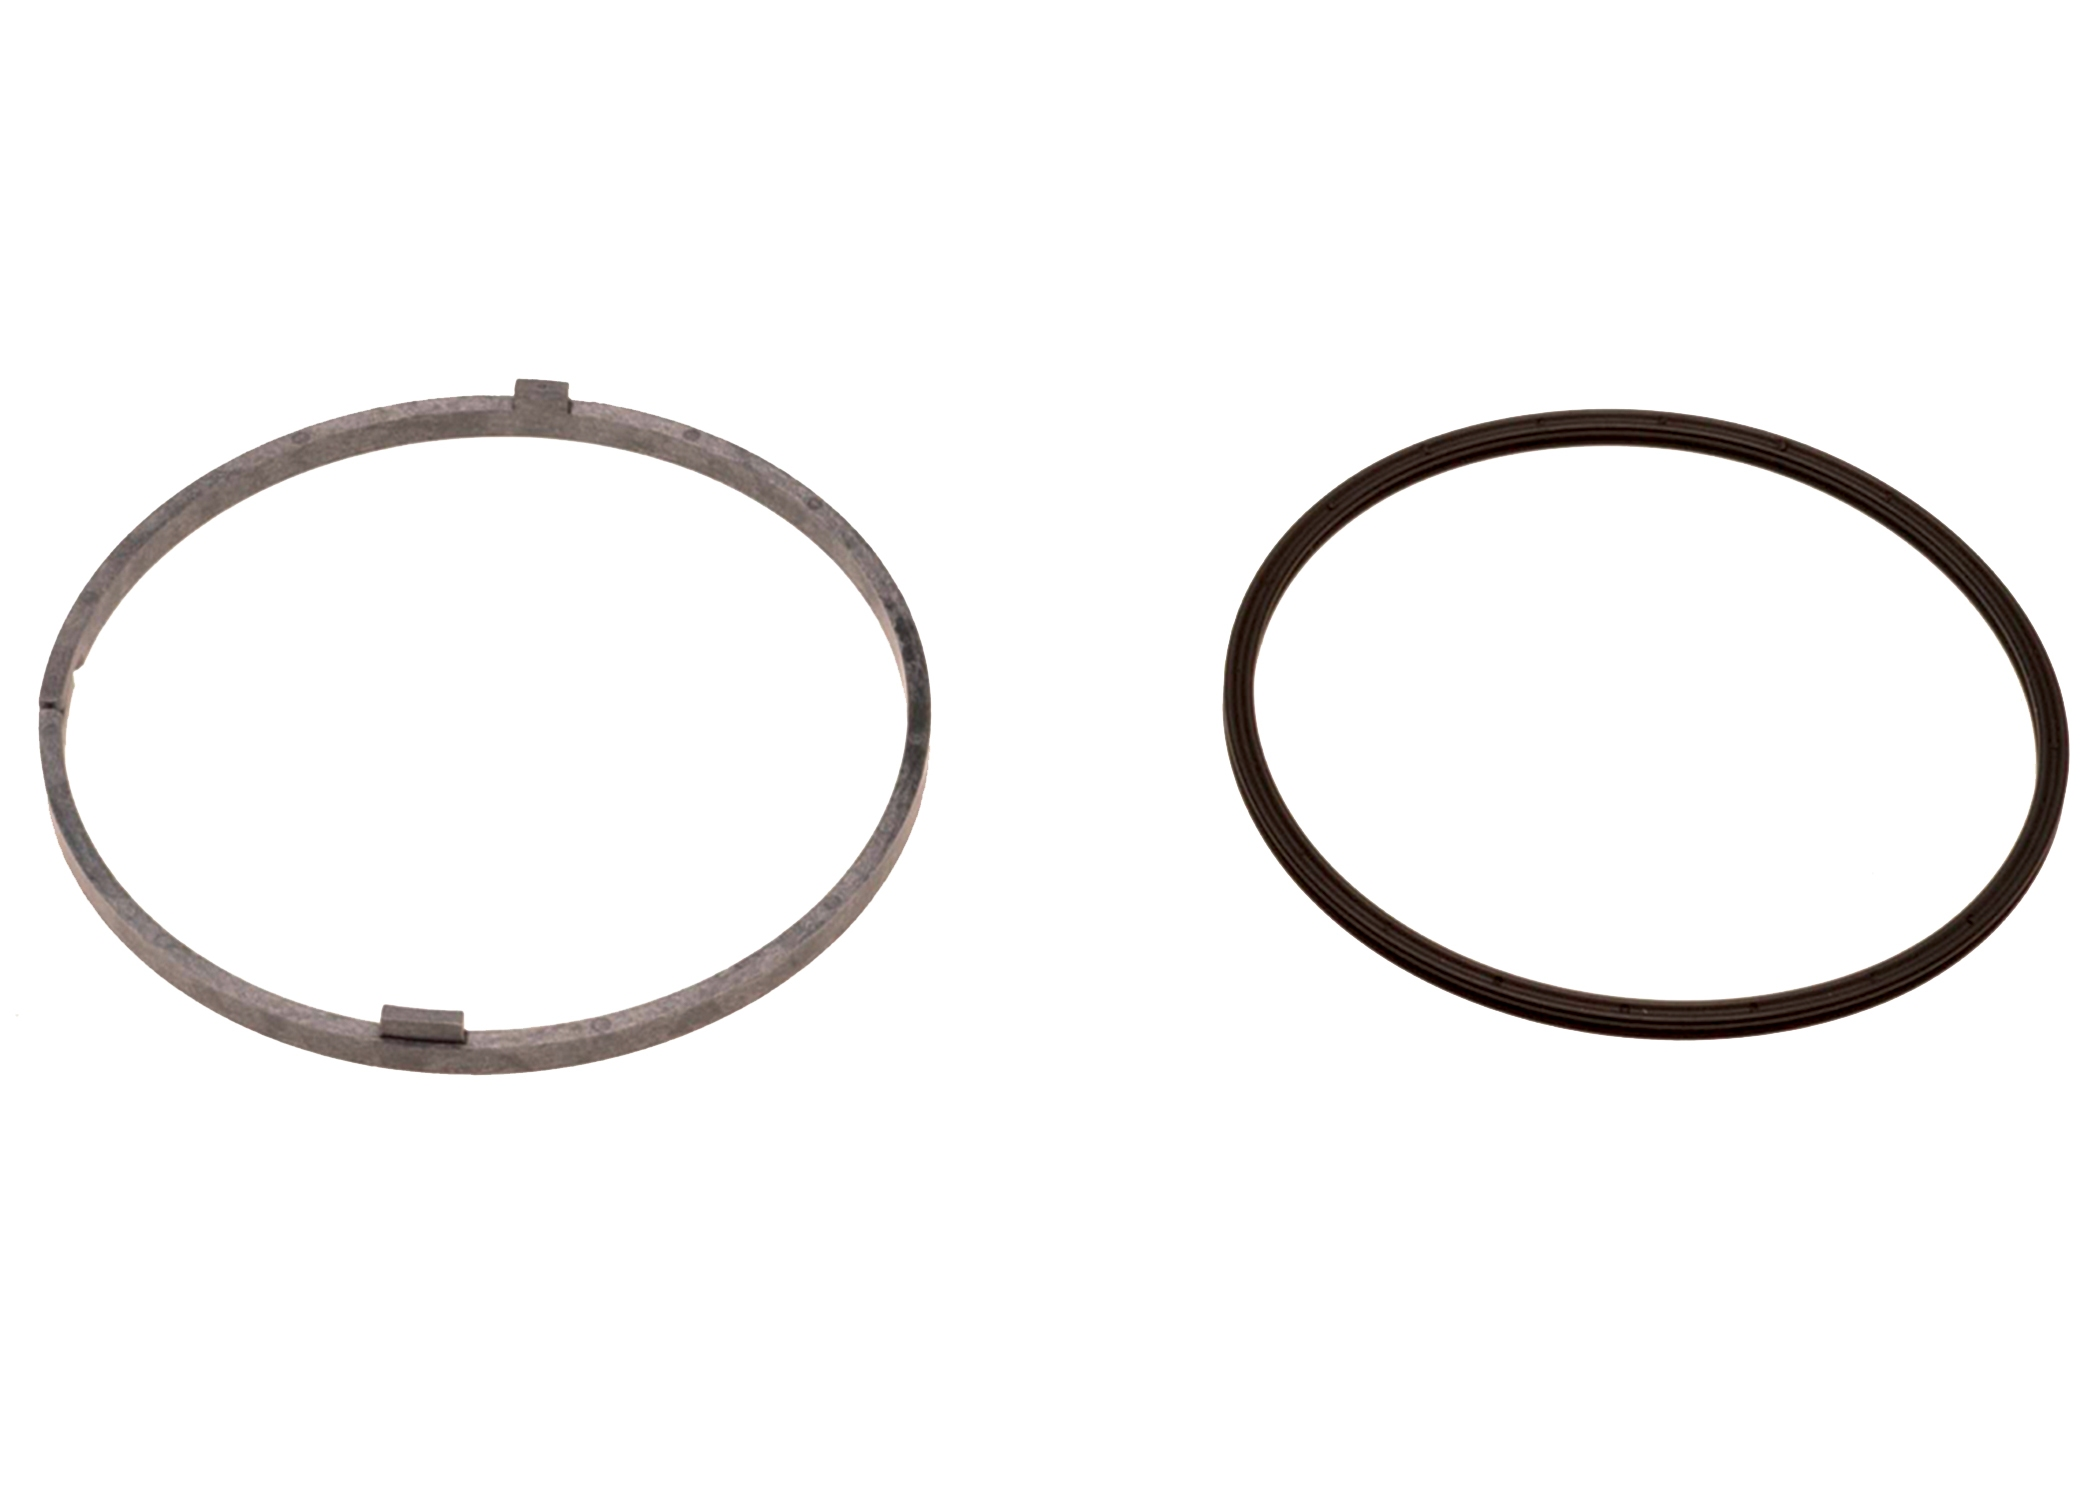 ACDELCO OE SERVICE - 2nd Clutch Housing Fluid Seal Ring Kit (w/Seal) - DCB 24213410